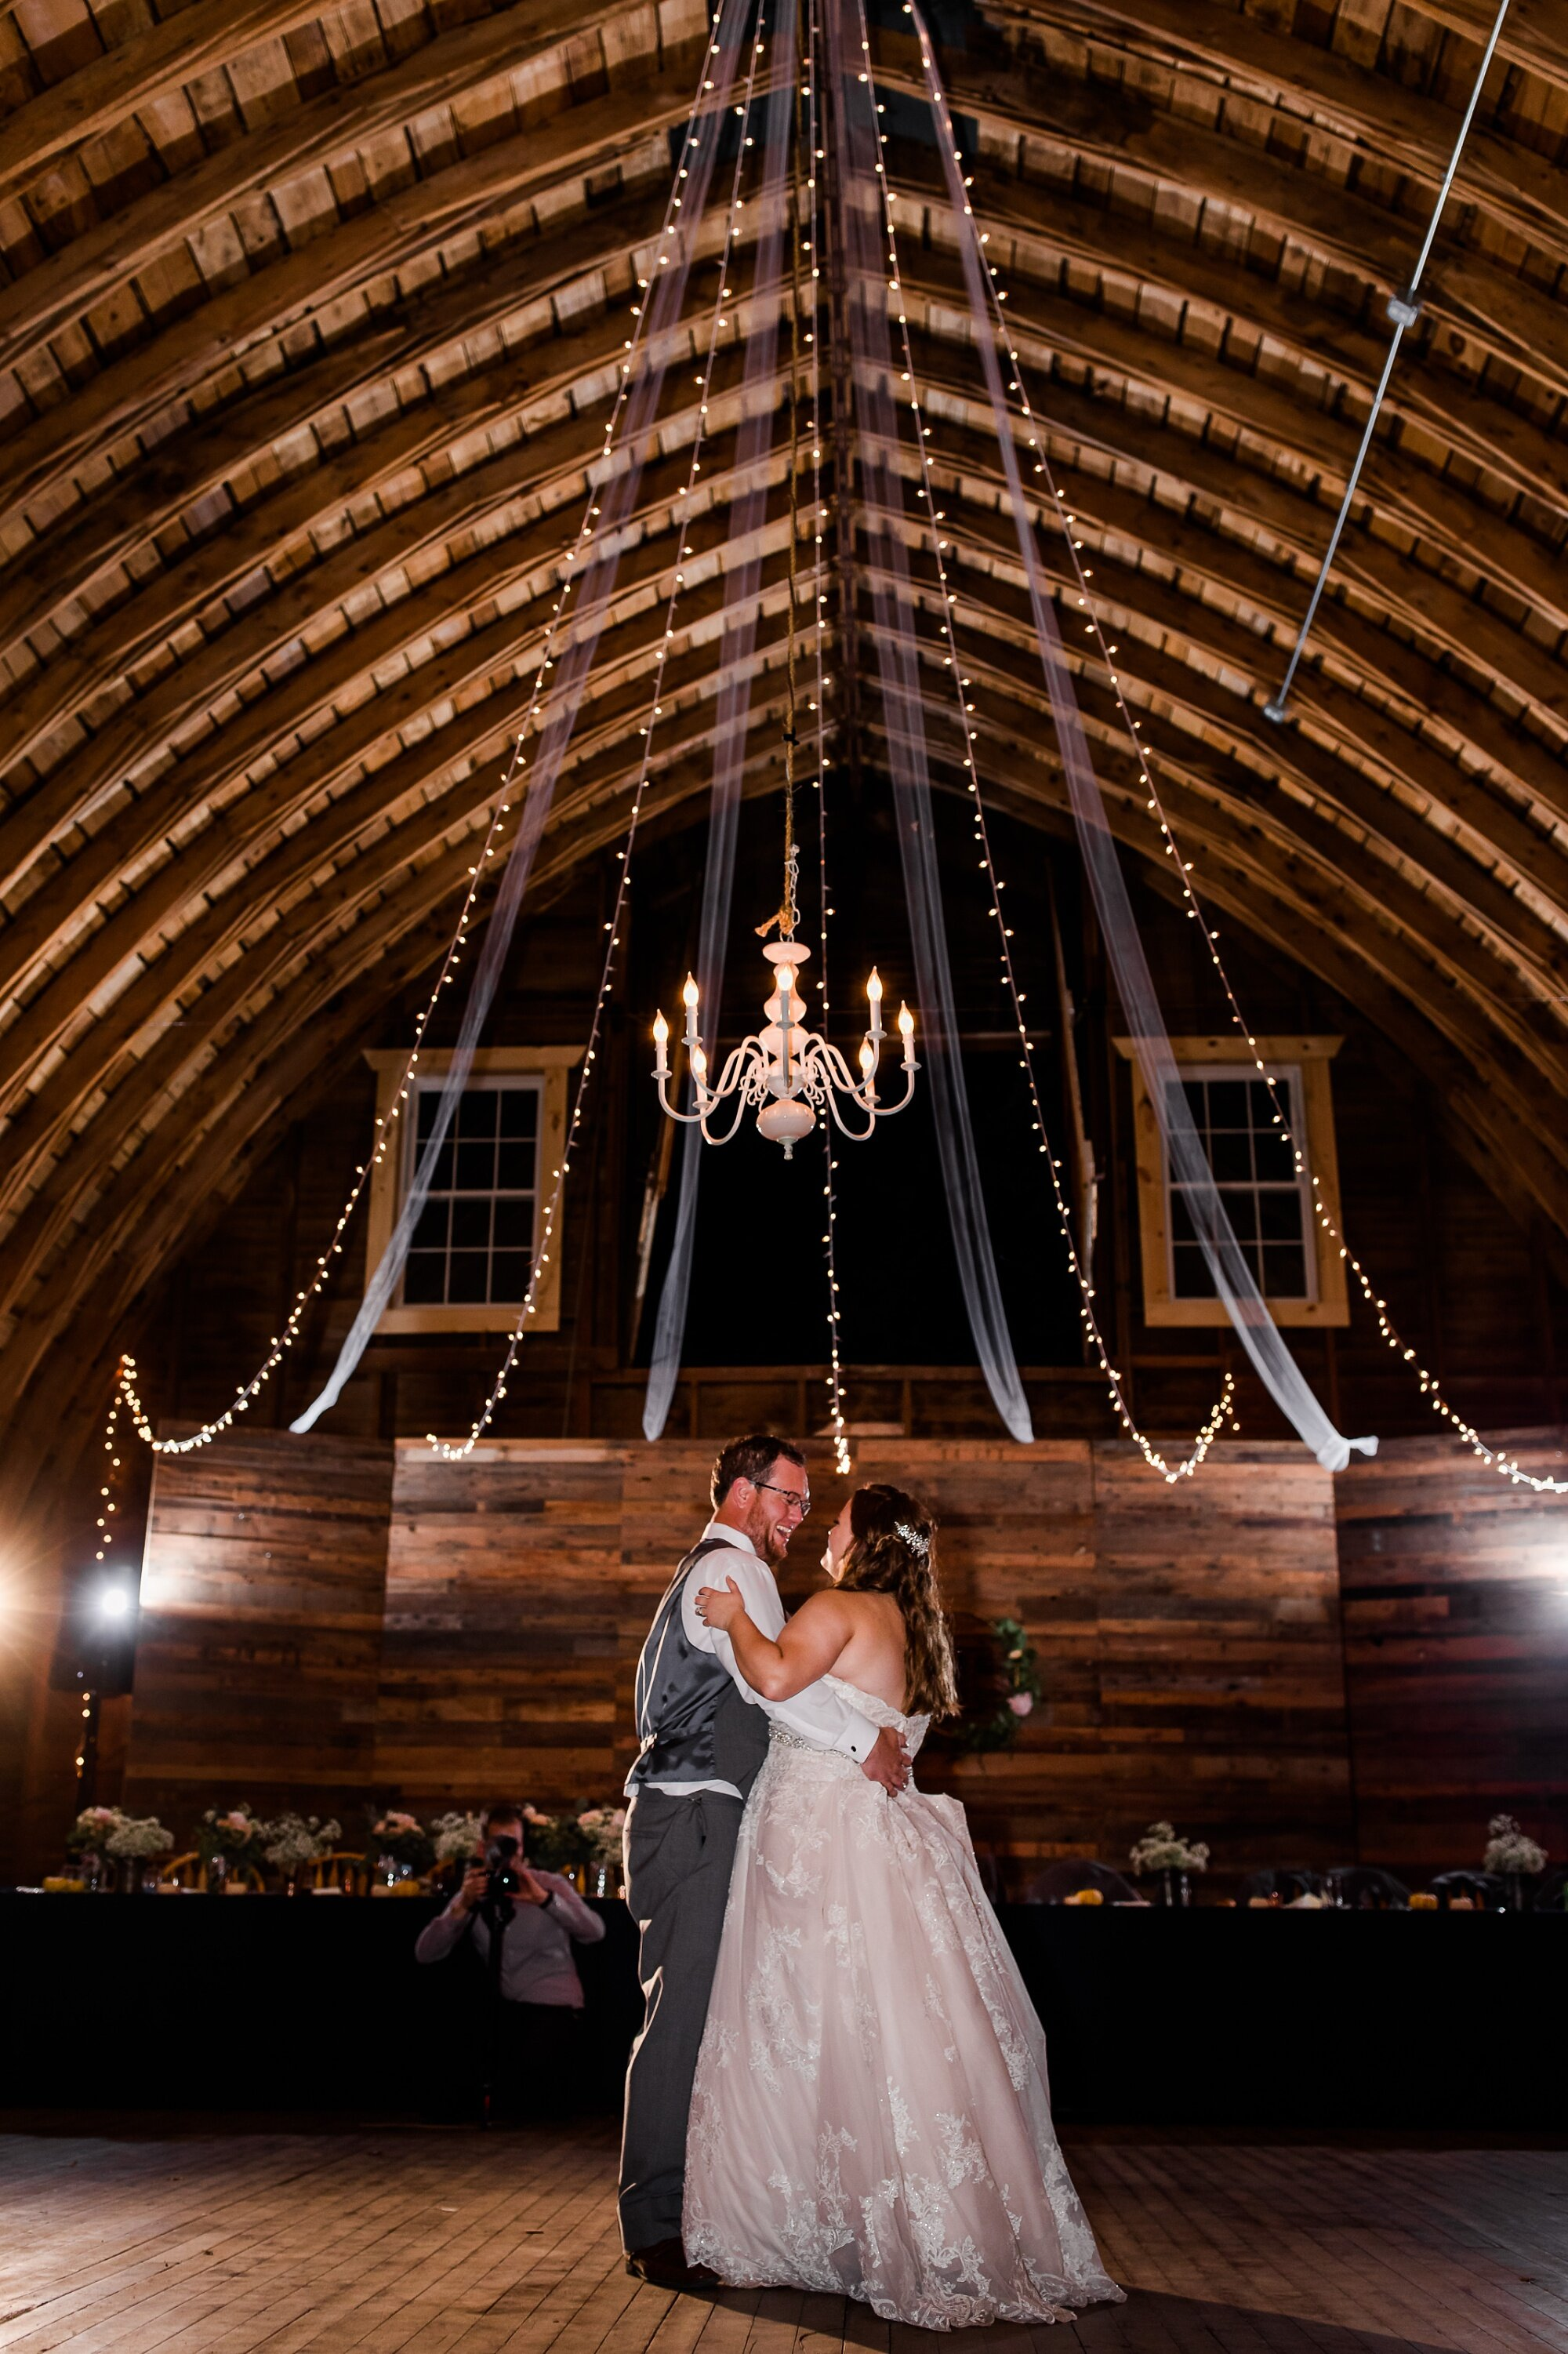 Amber Langerud Photography_Lake Park Minnesota, Outdoor Barn Wedding With Horses_7022.jpg